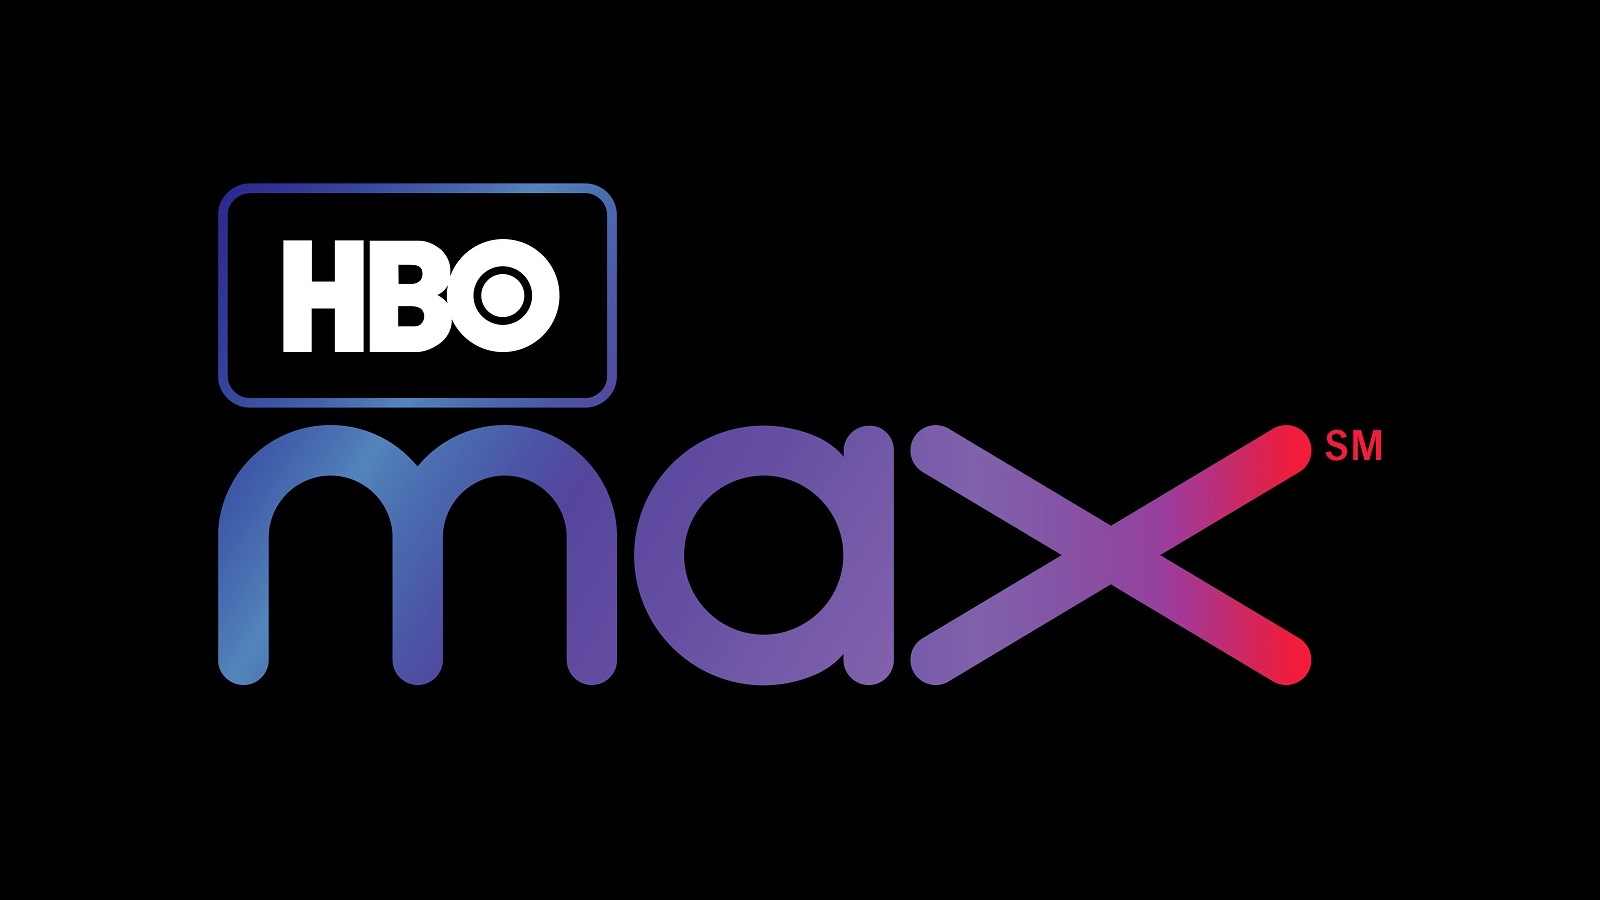 WarnerMedia announces HBO Max, an all-inclusive streaming service